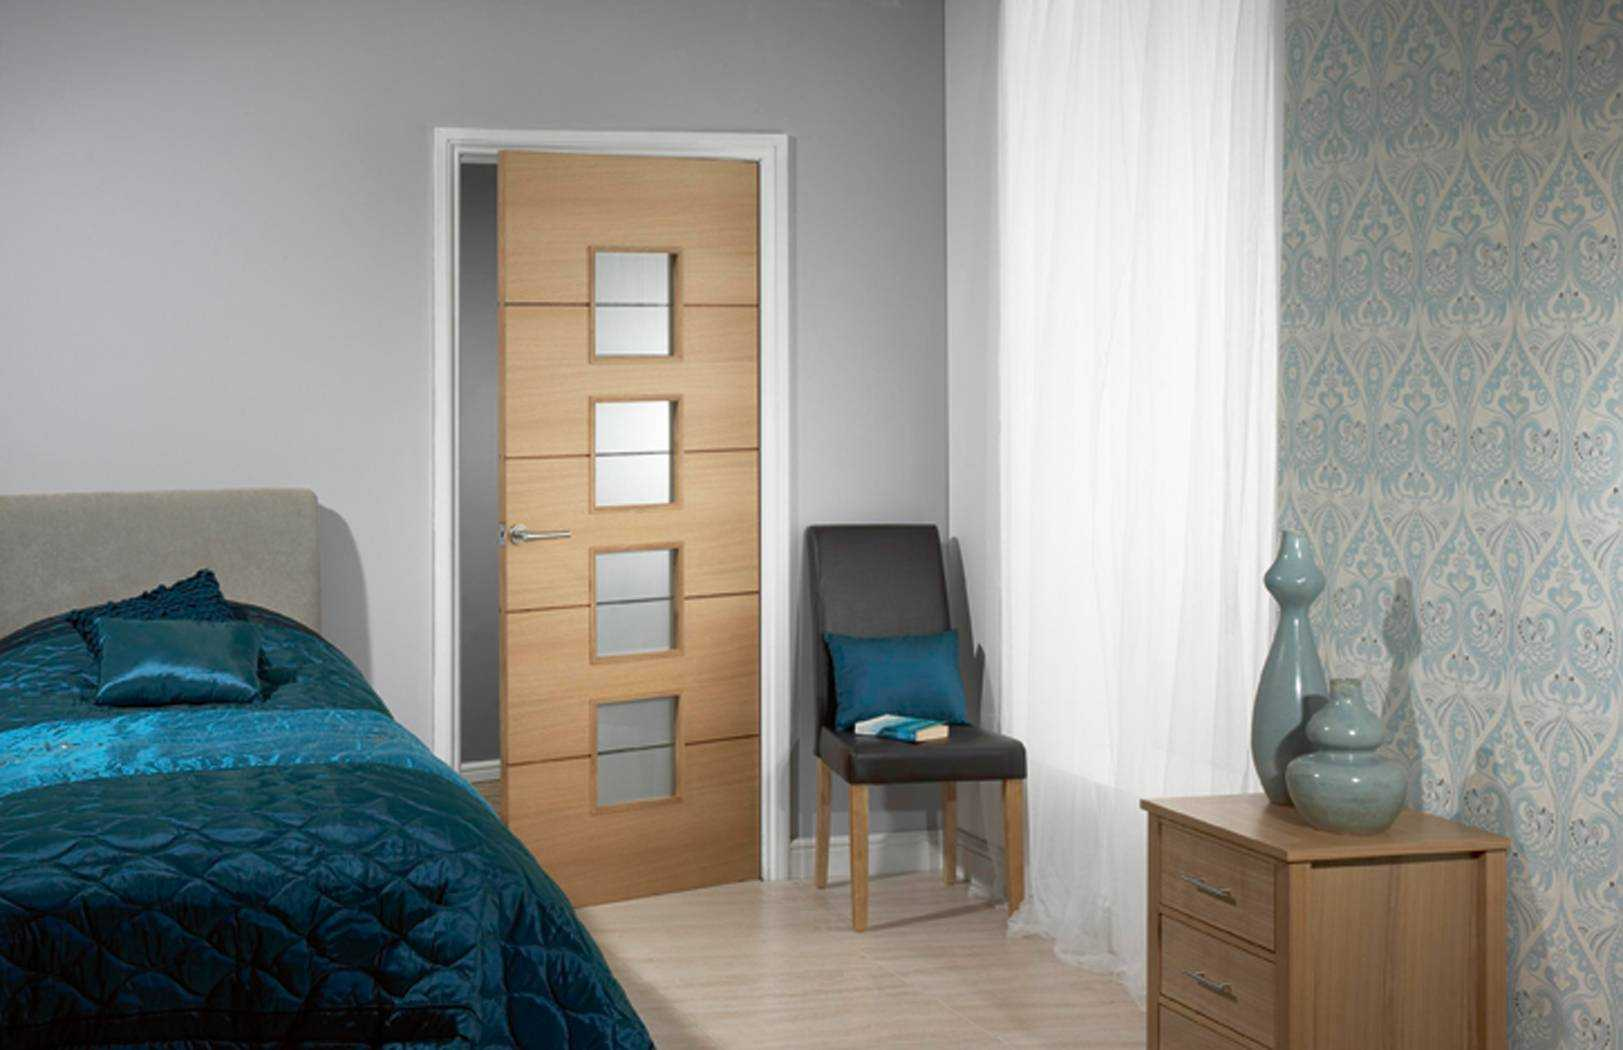 Cheap interior doors for sale in UK are offered through local newspapers